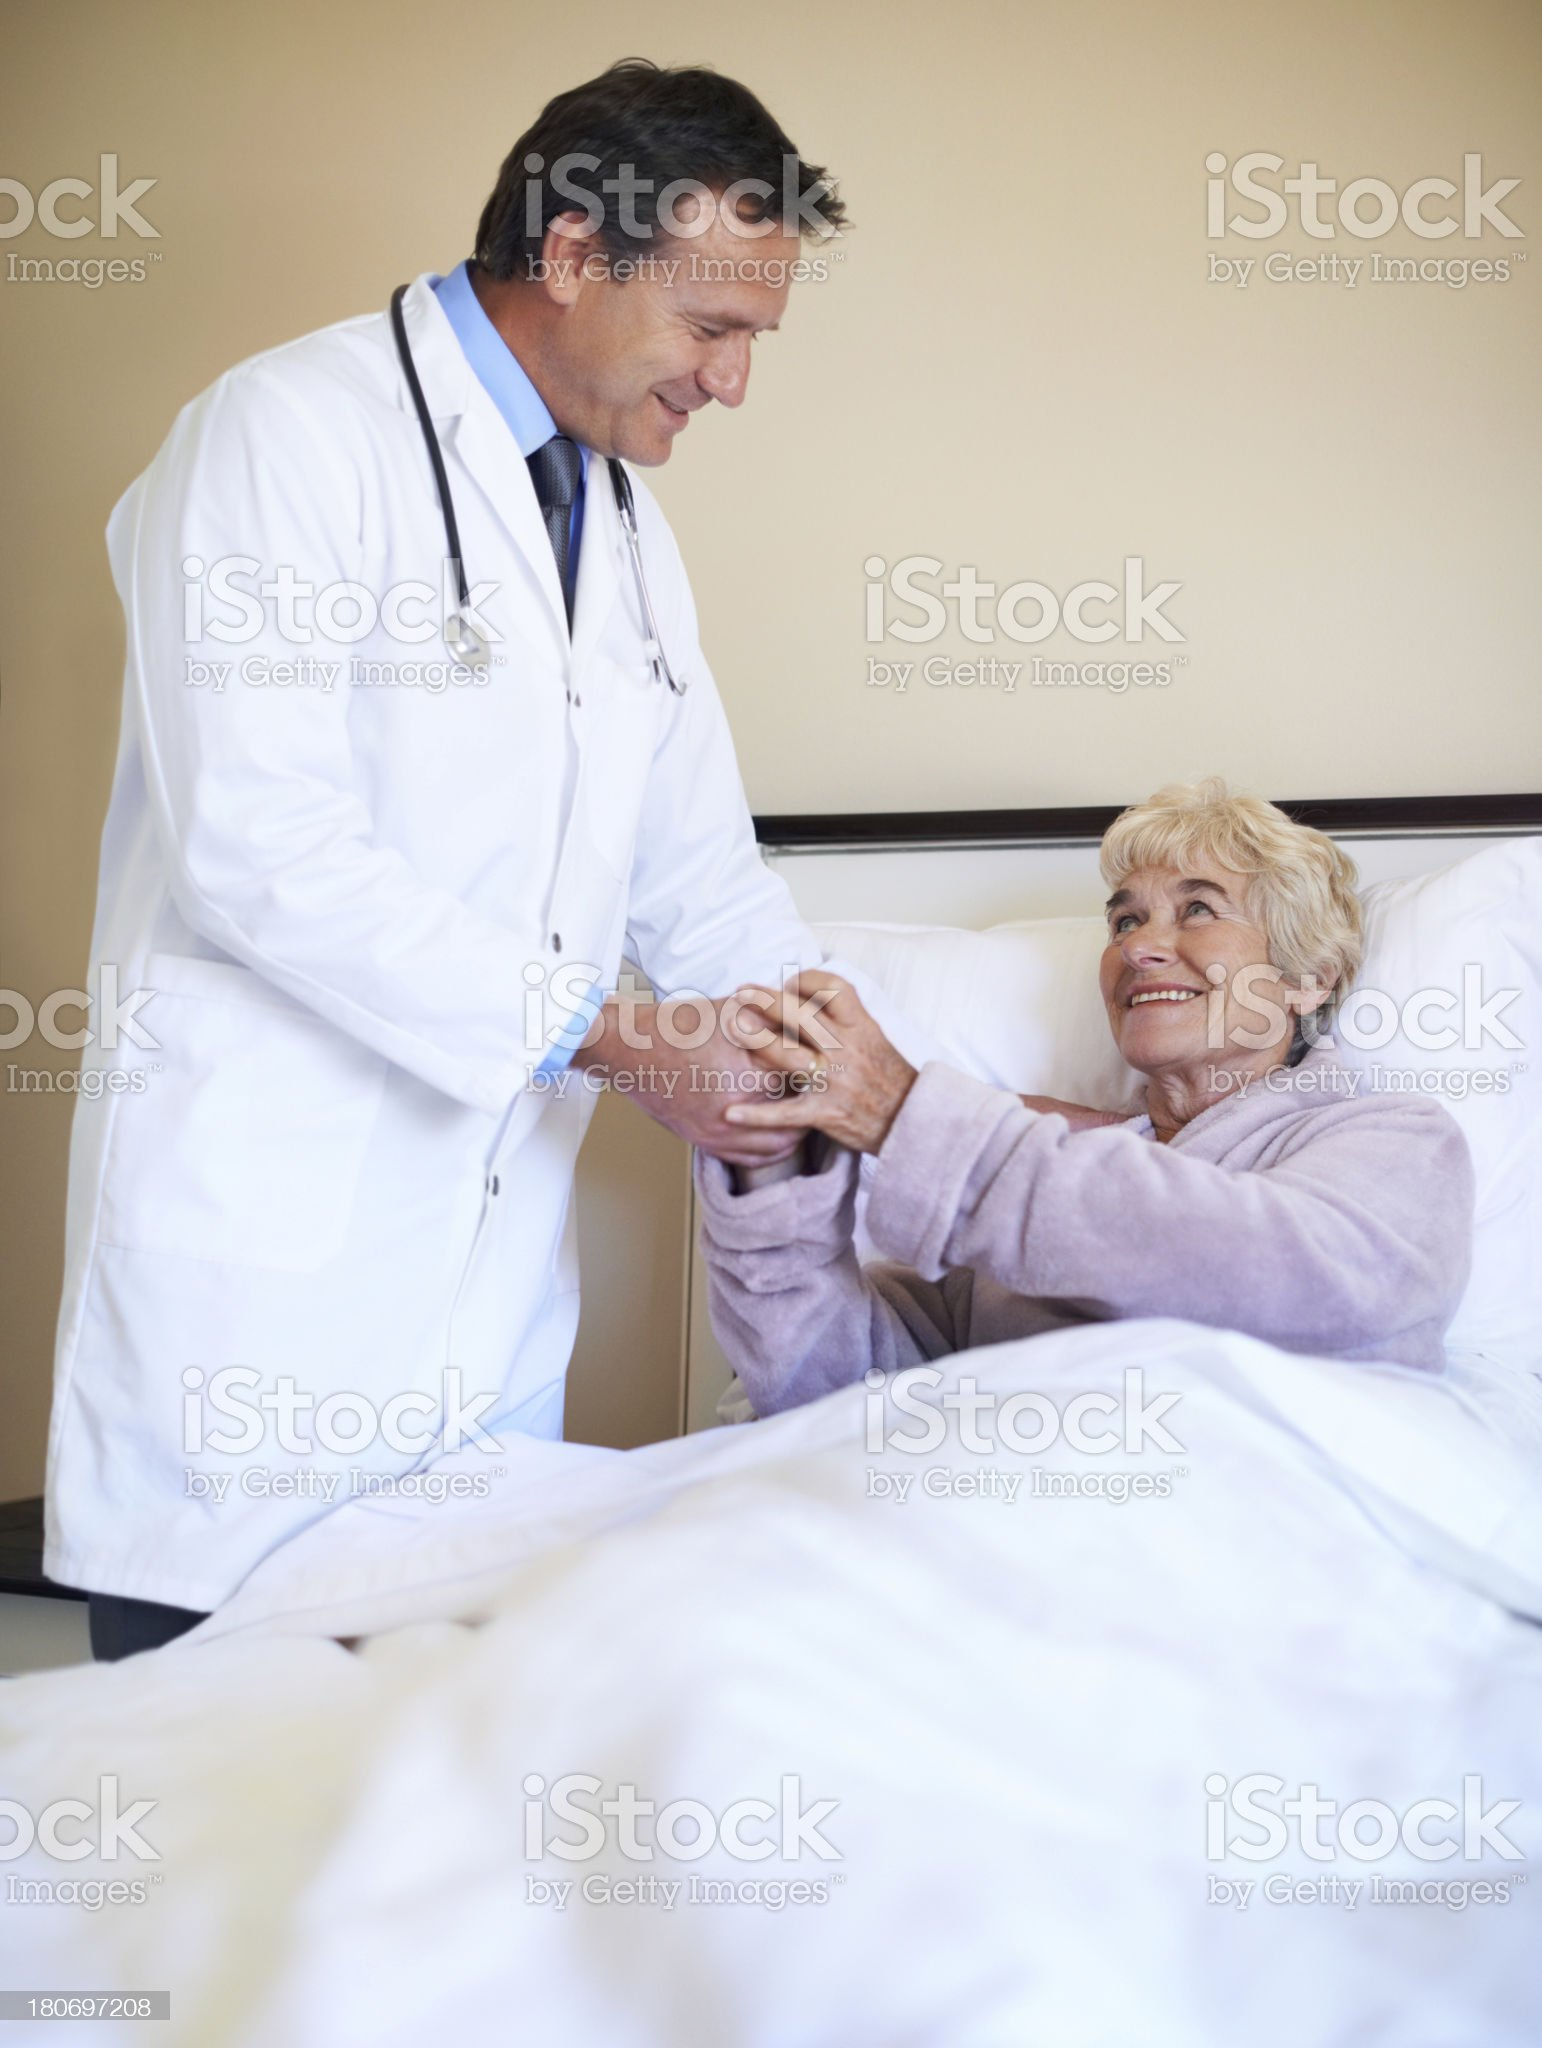 Showing her appreciation royalty-free stock photo